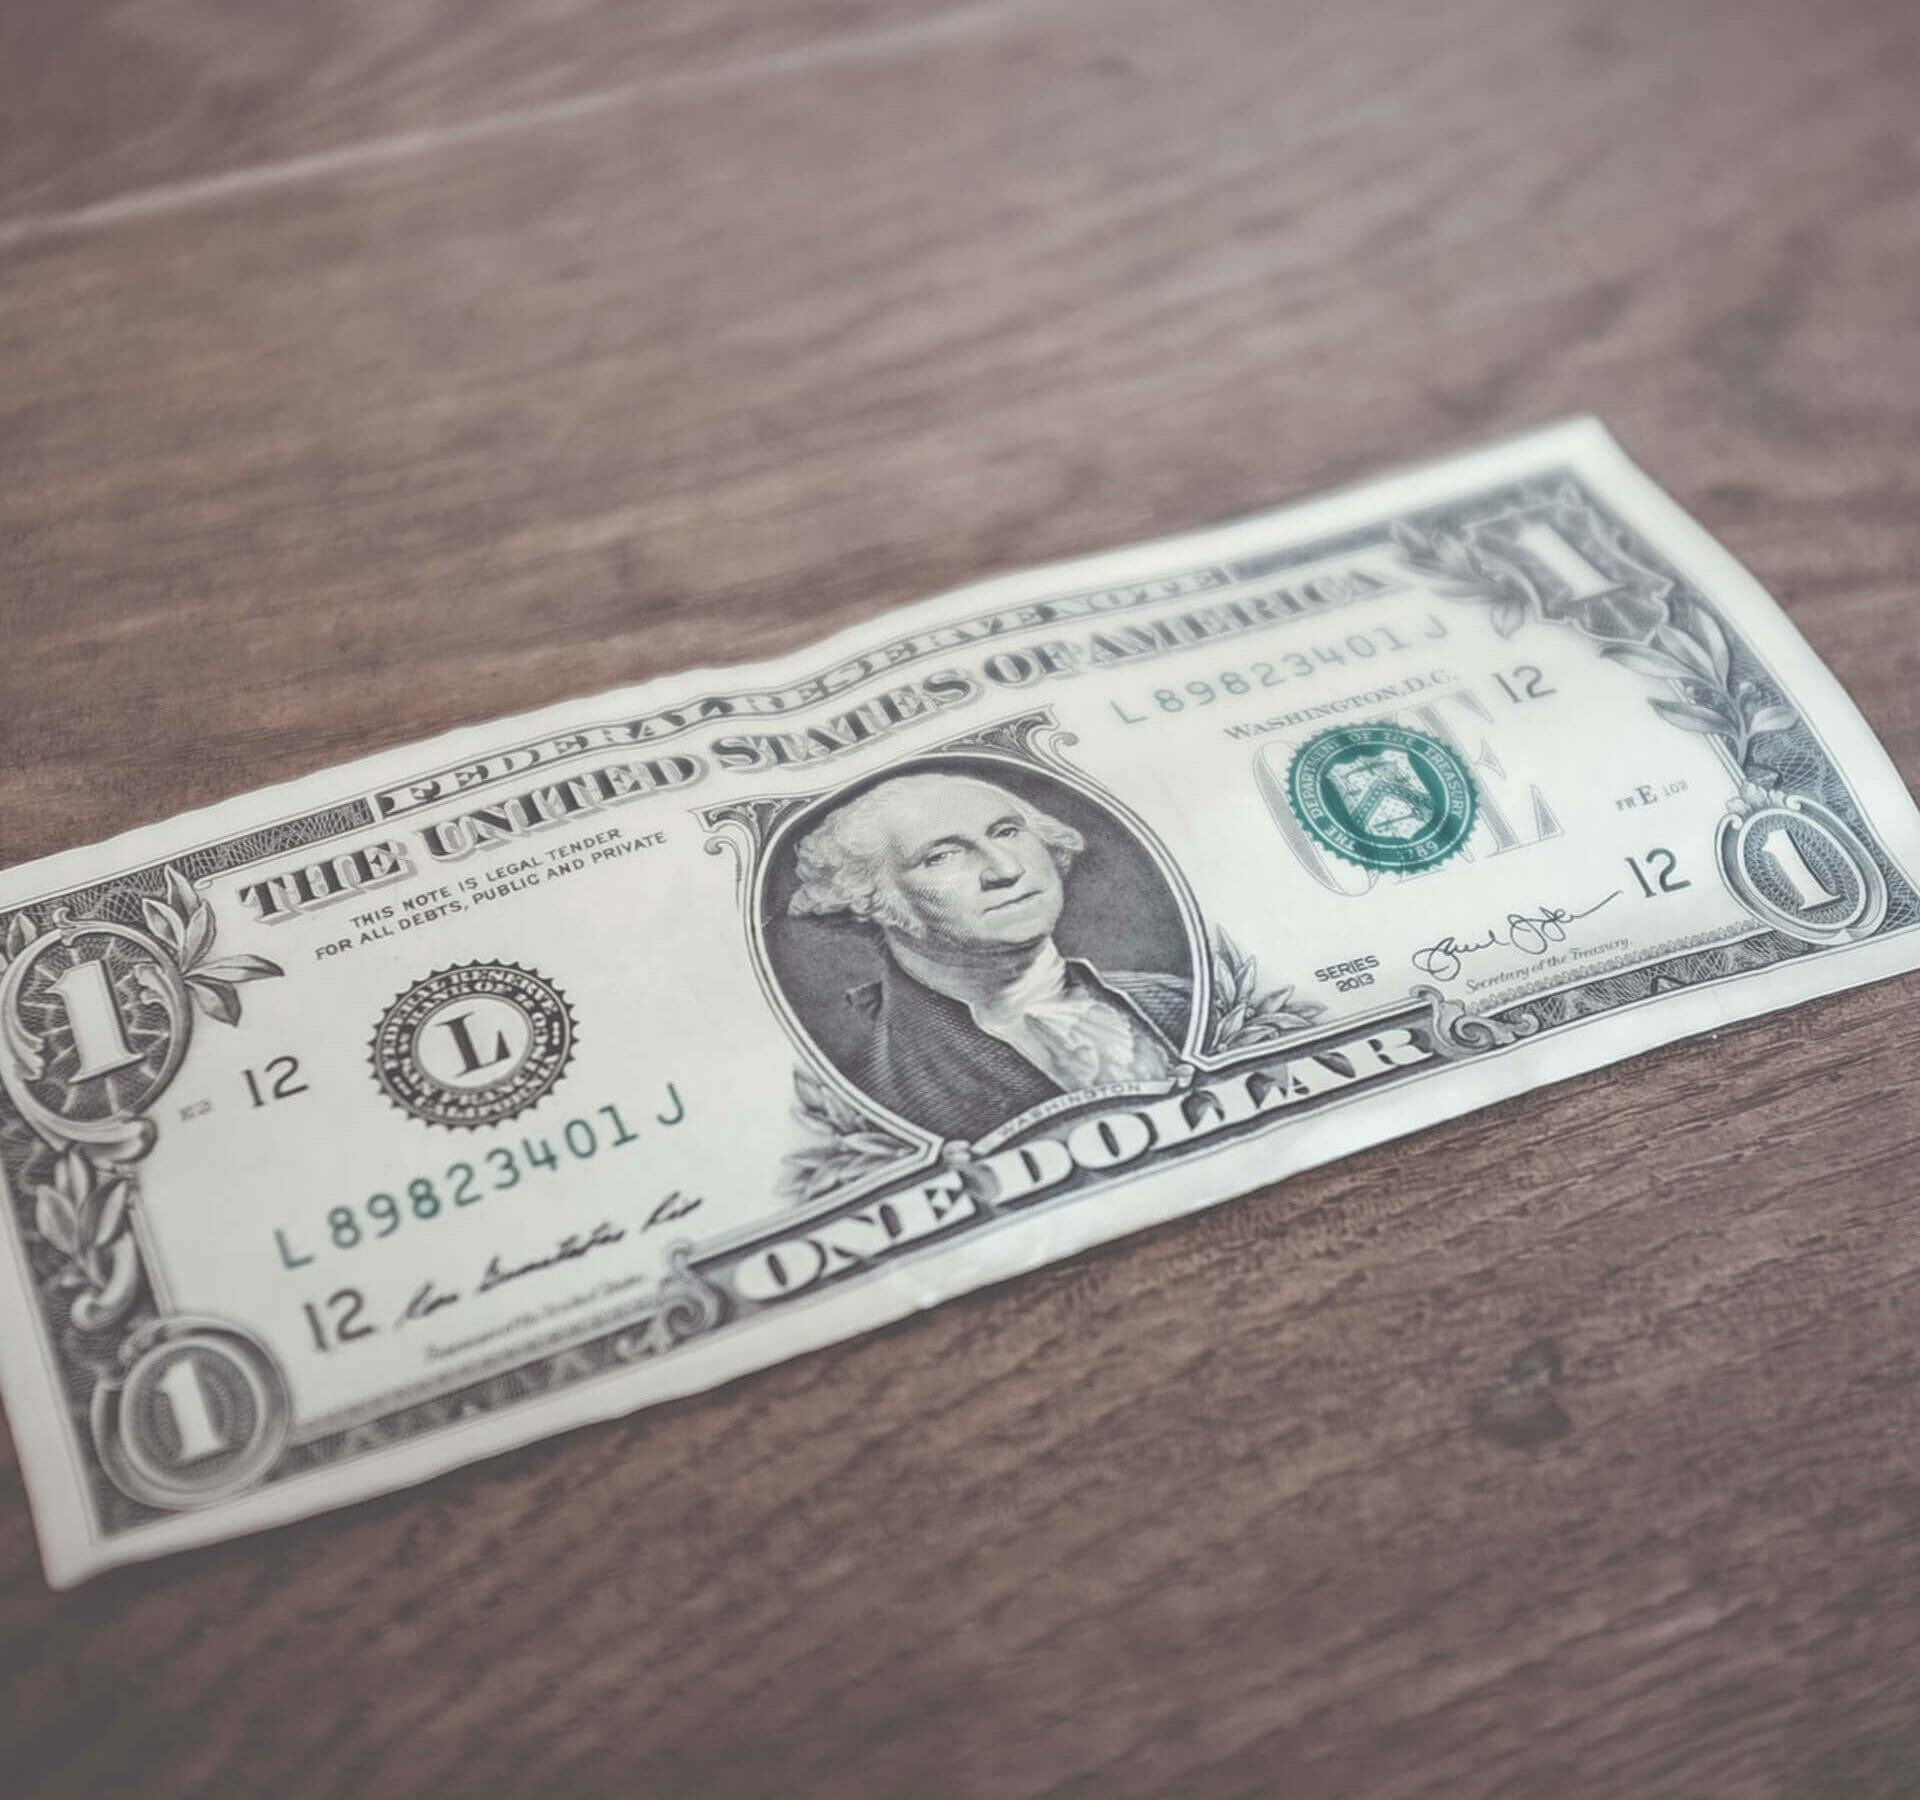 6 Ways to Reach Donors in a Digital World